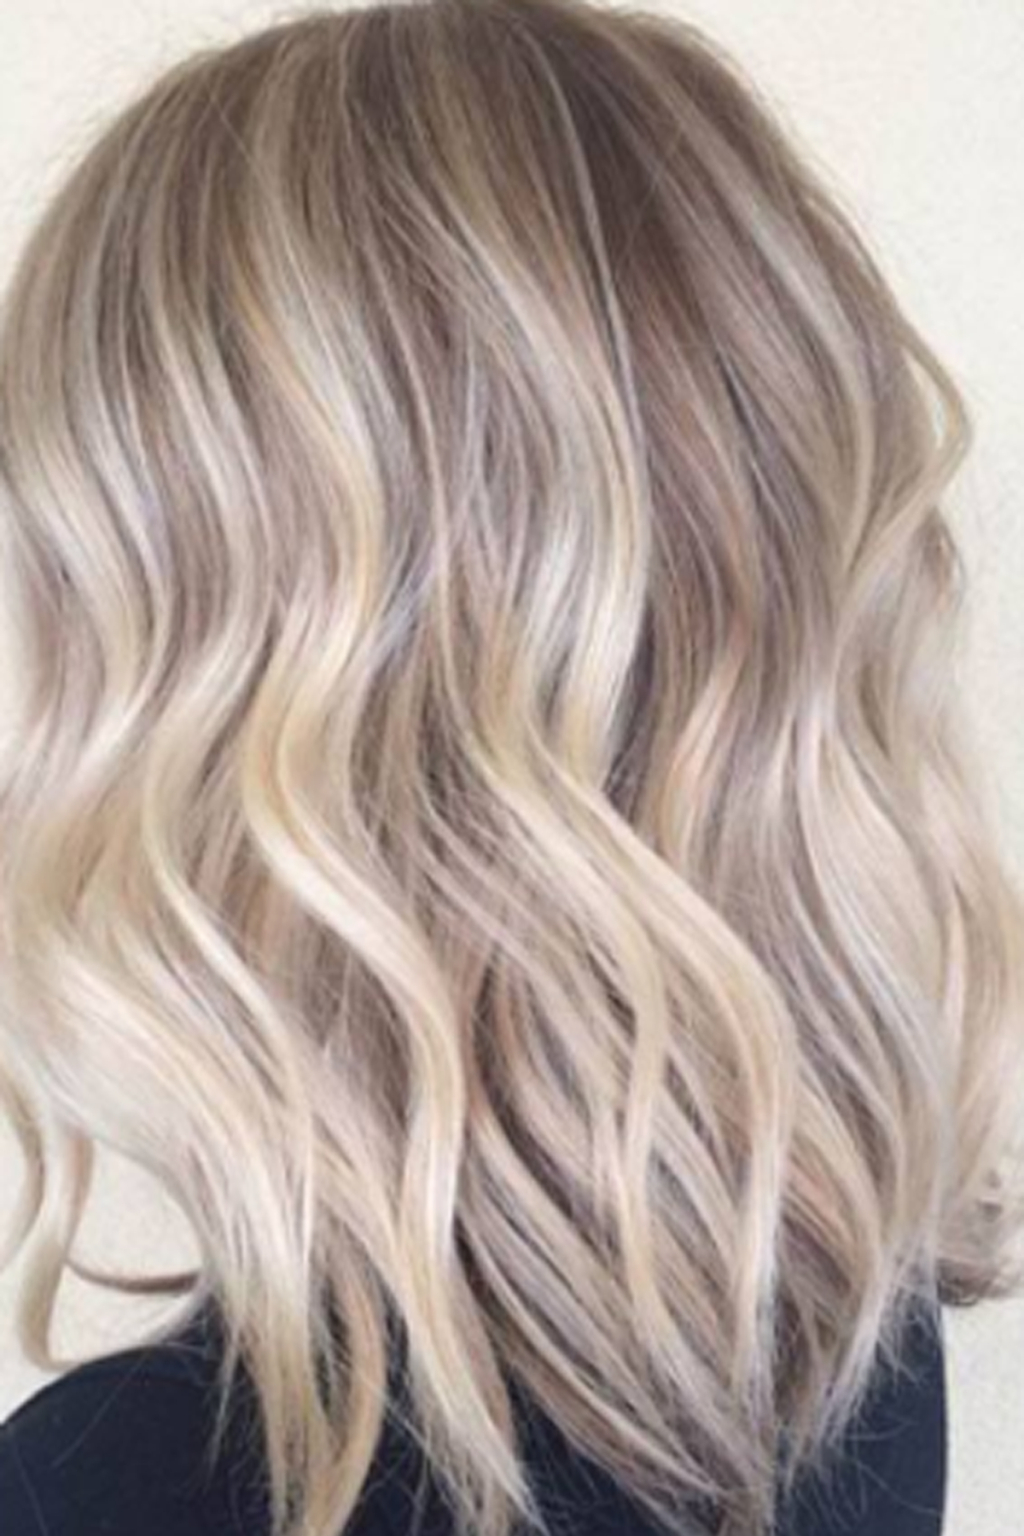 15 Gorgeous Hair Colors That Will Be Huge In 2018 | Gorgeous Hair For Angelic Blonde Balayage Bob Hairstyles With Curls (View 9 of 20)